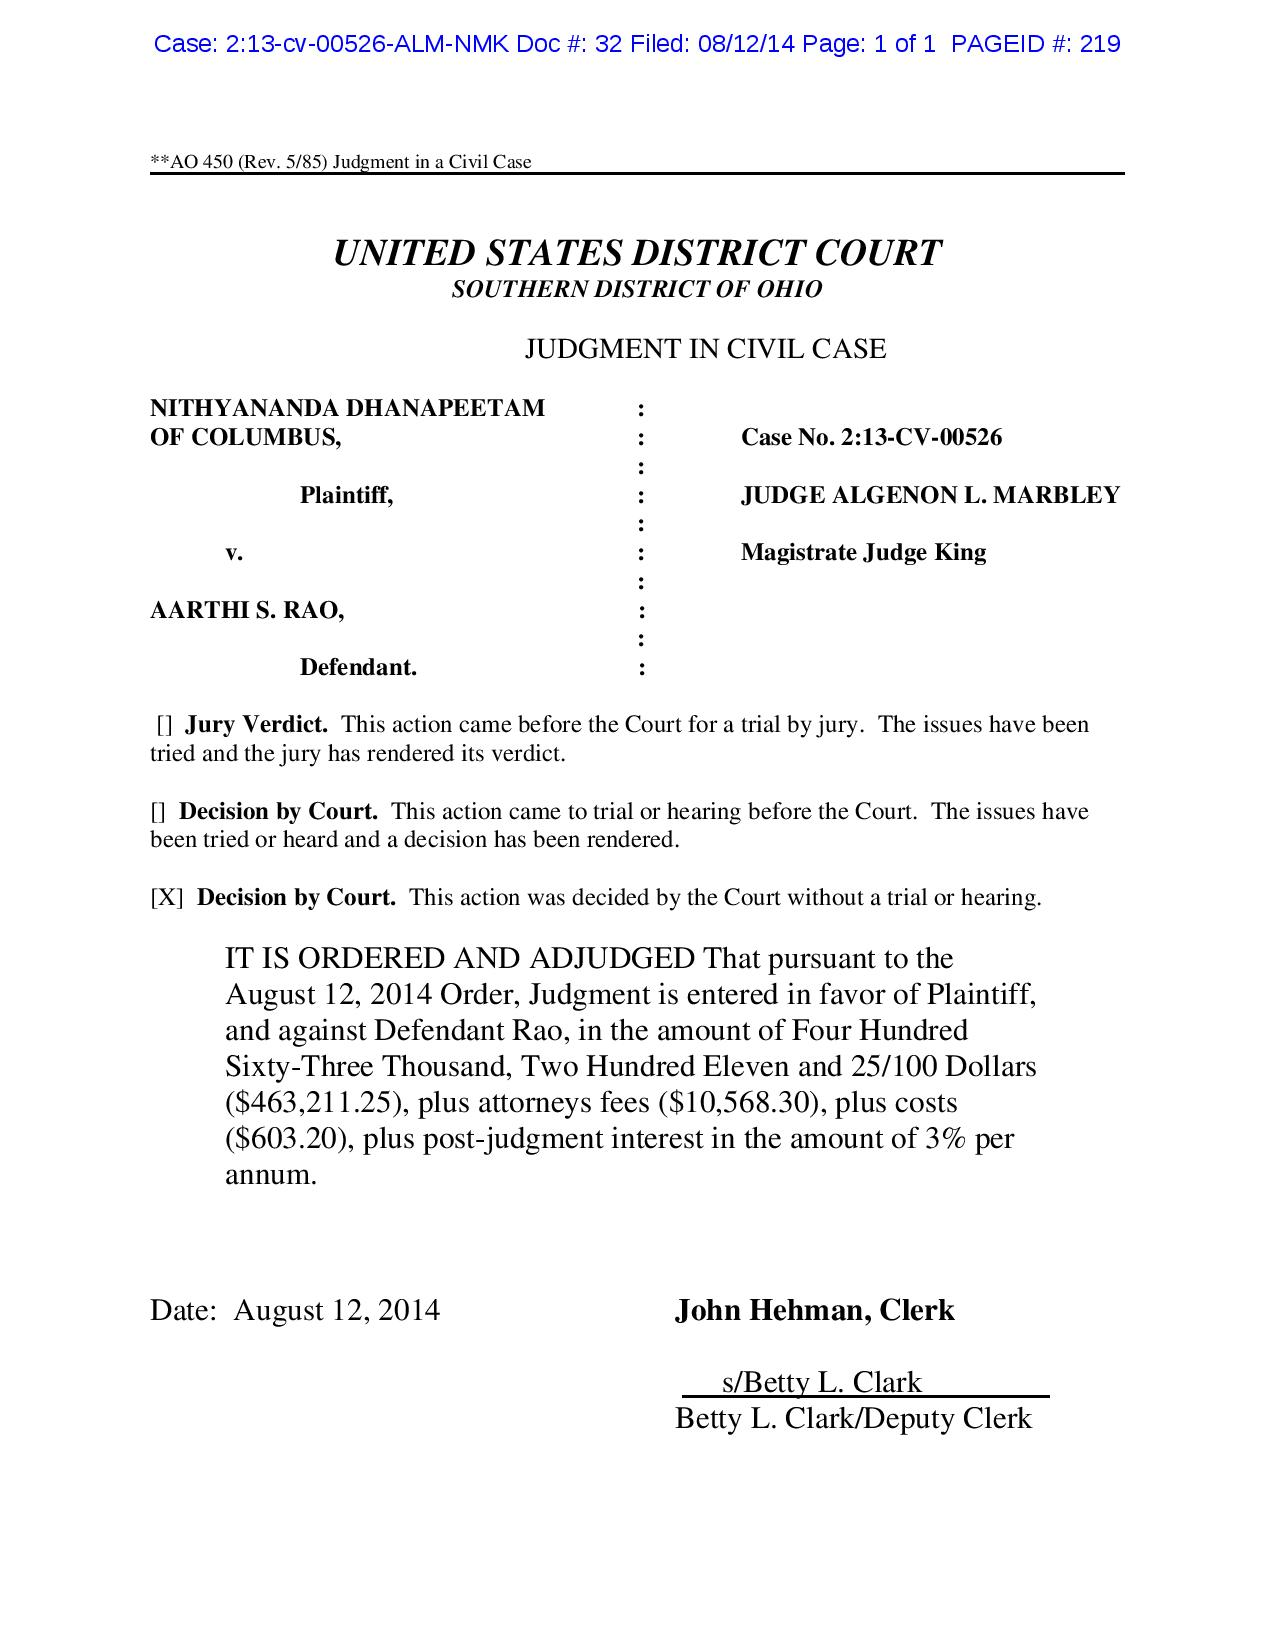 U.S. Federal Court issued against Aarthi S. Rao